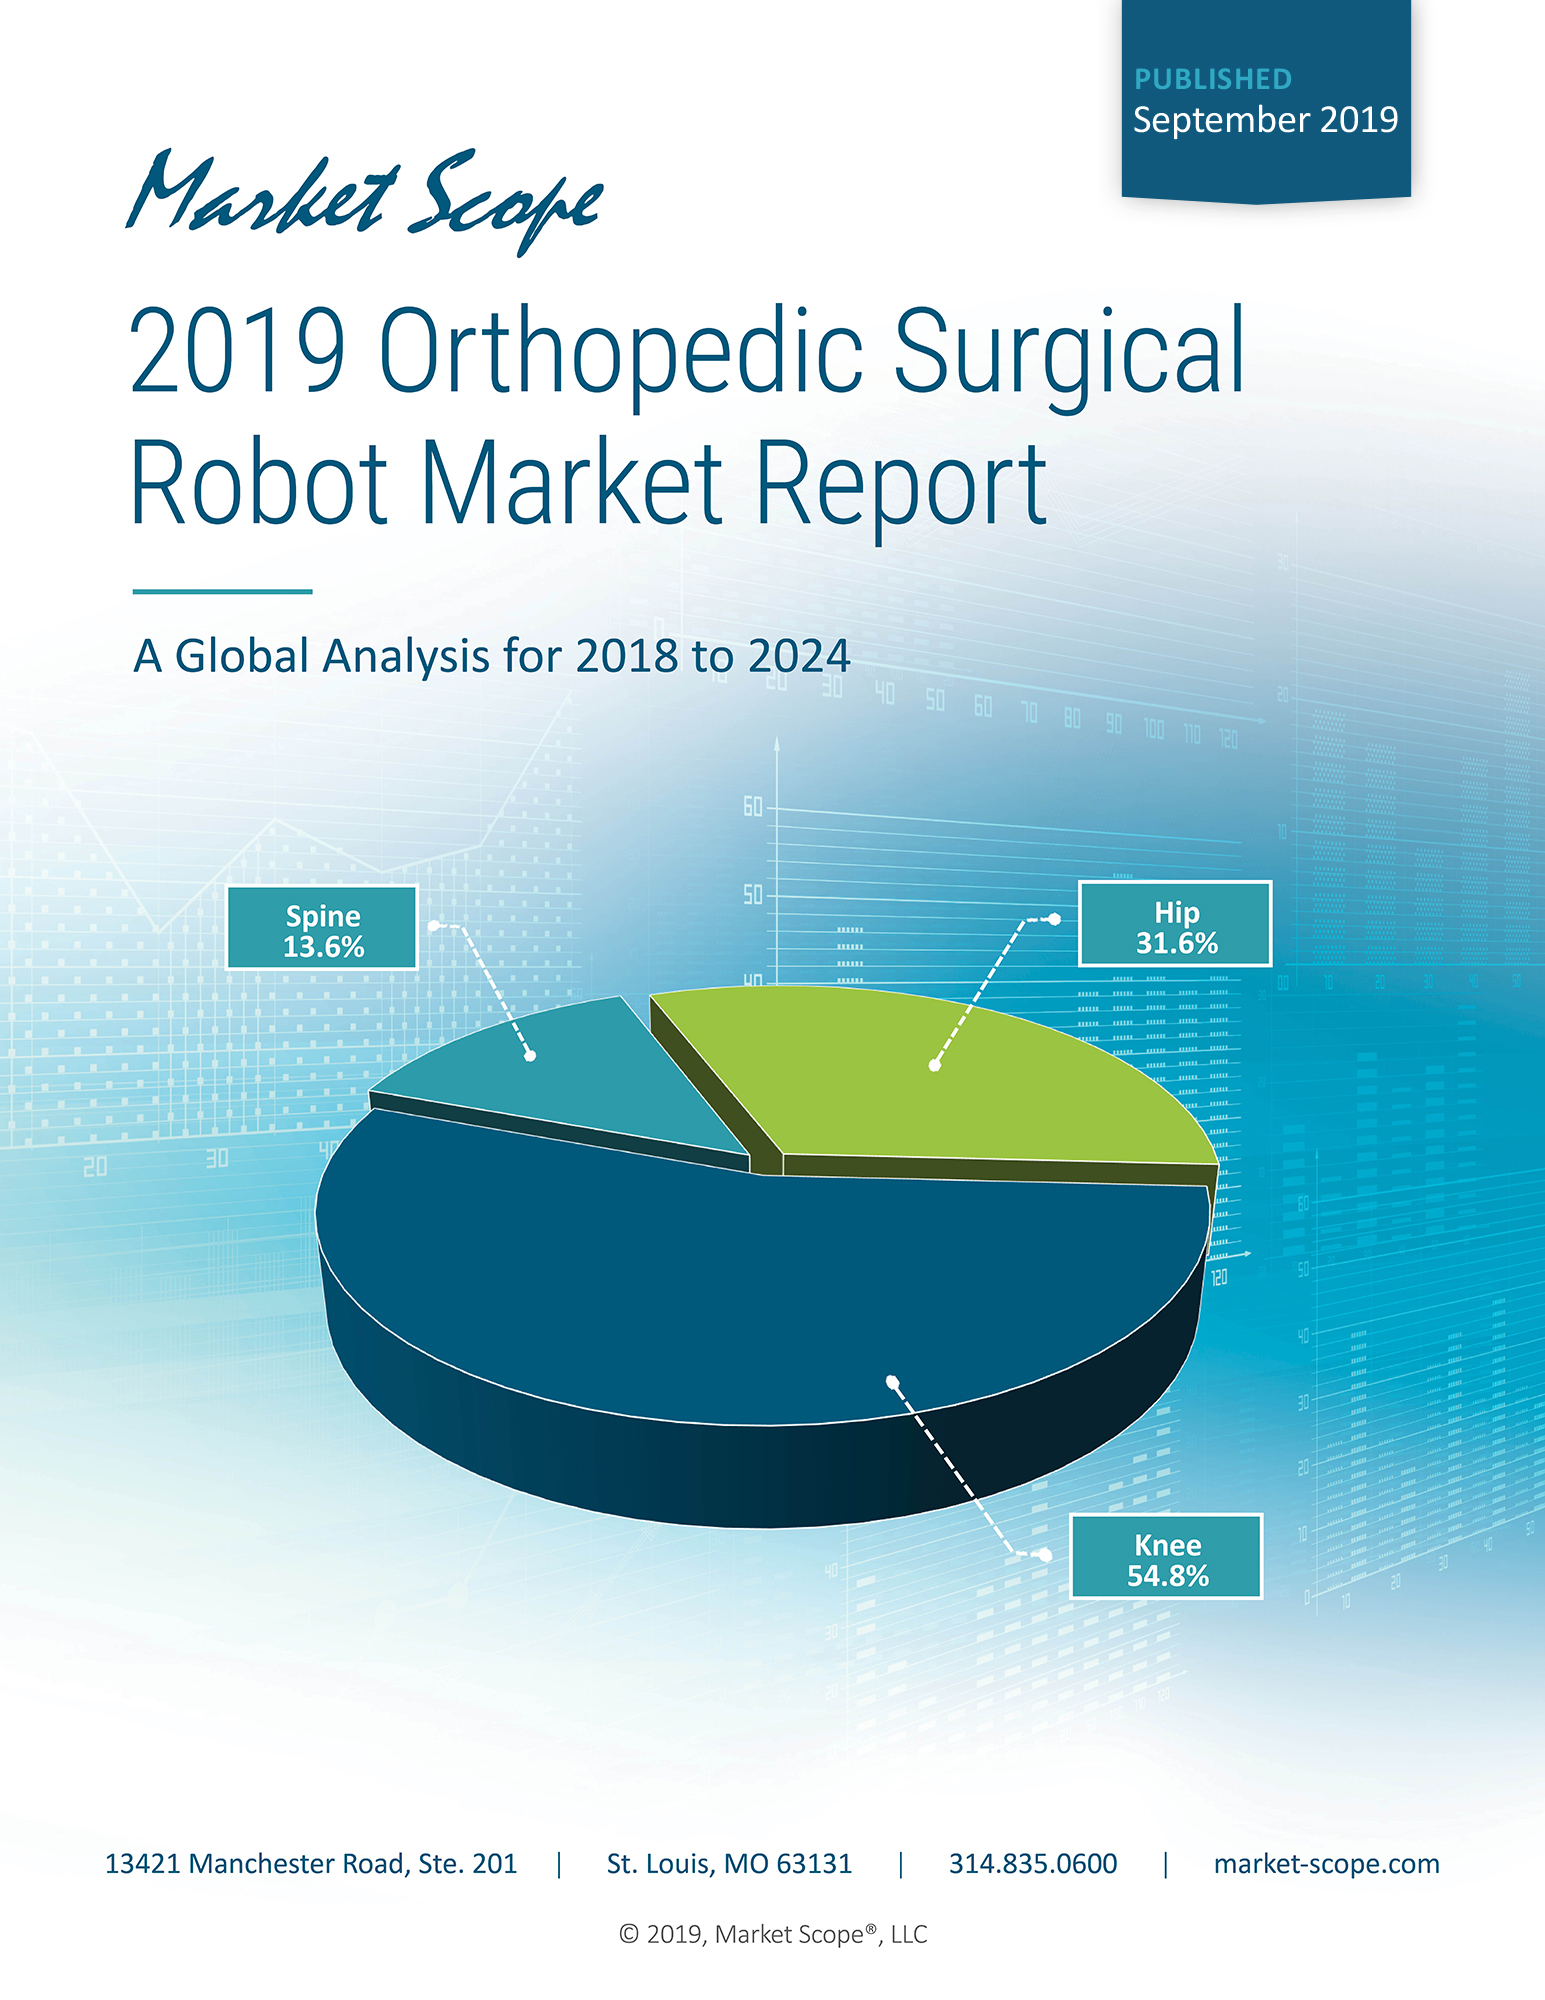 2019 Orthopedic Surgical Robot Market Report: A Global Analysis for 2018 to 2024, September, 2019